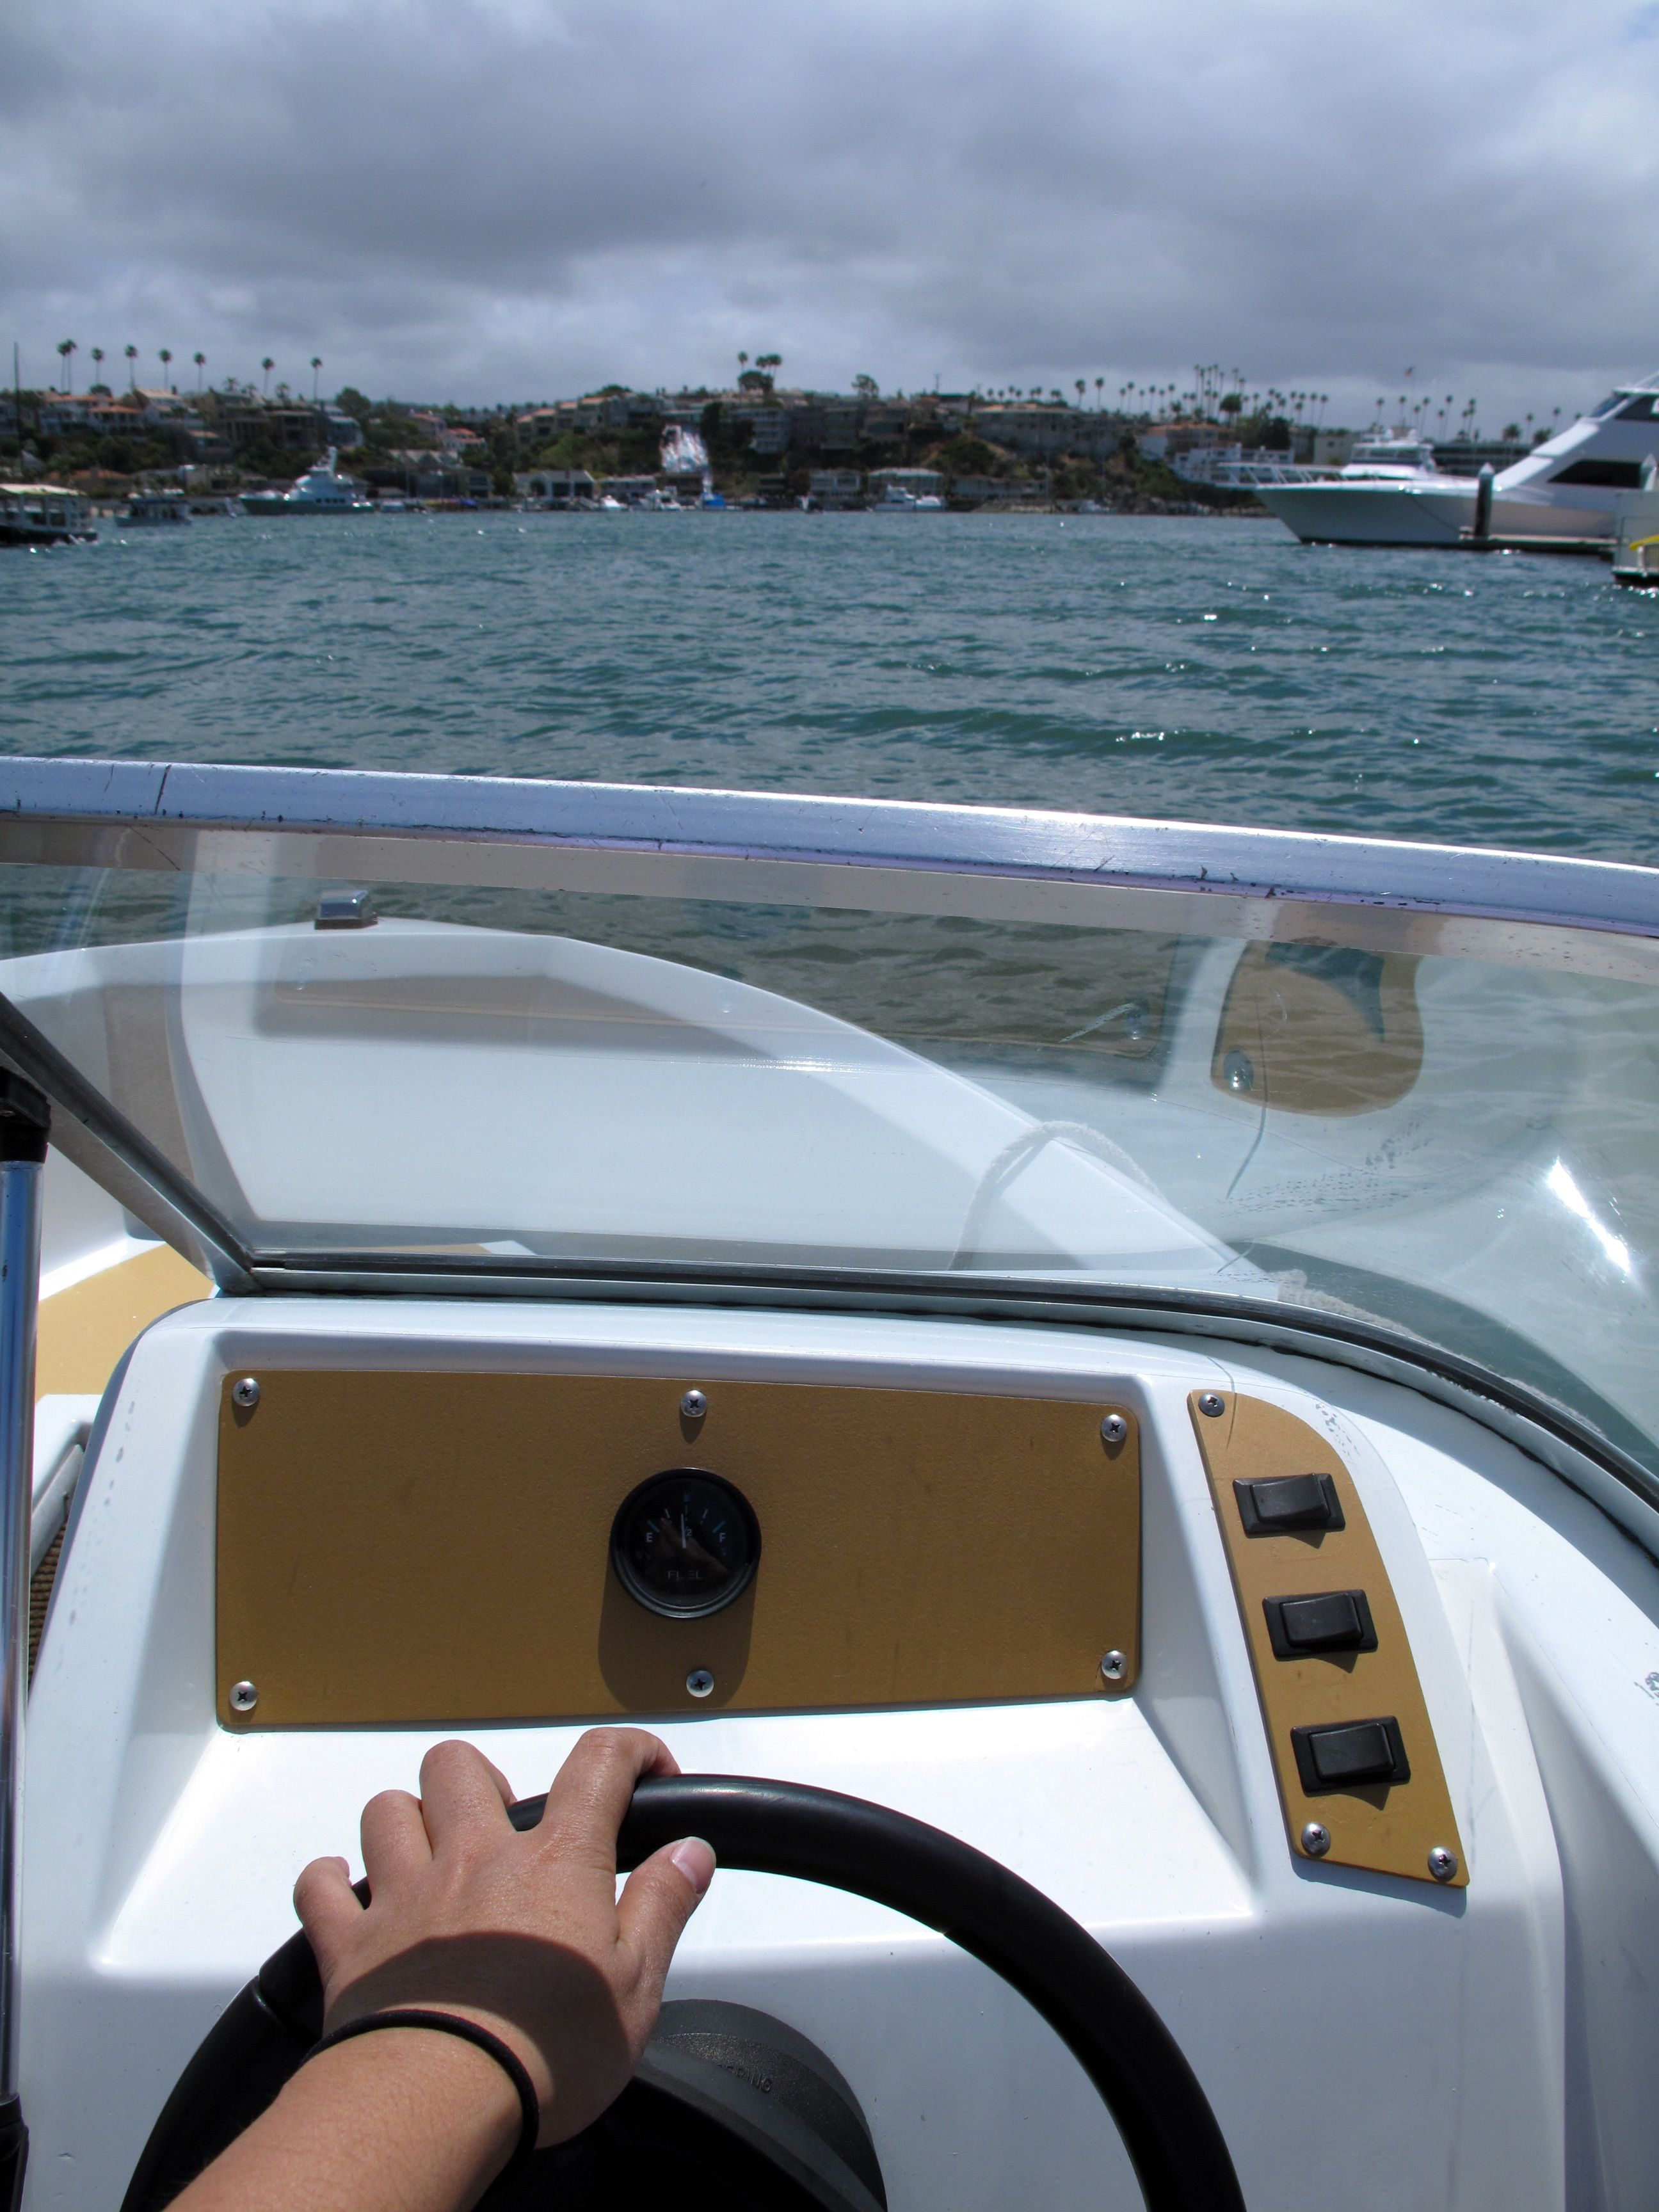 Driving my boat photo